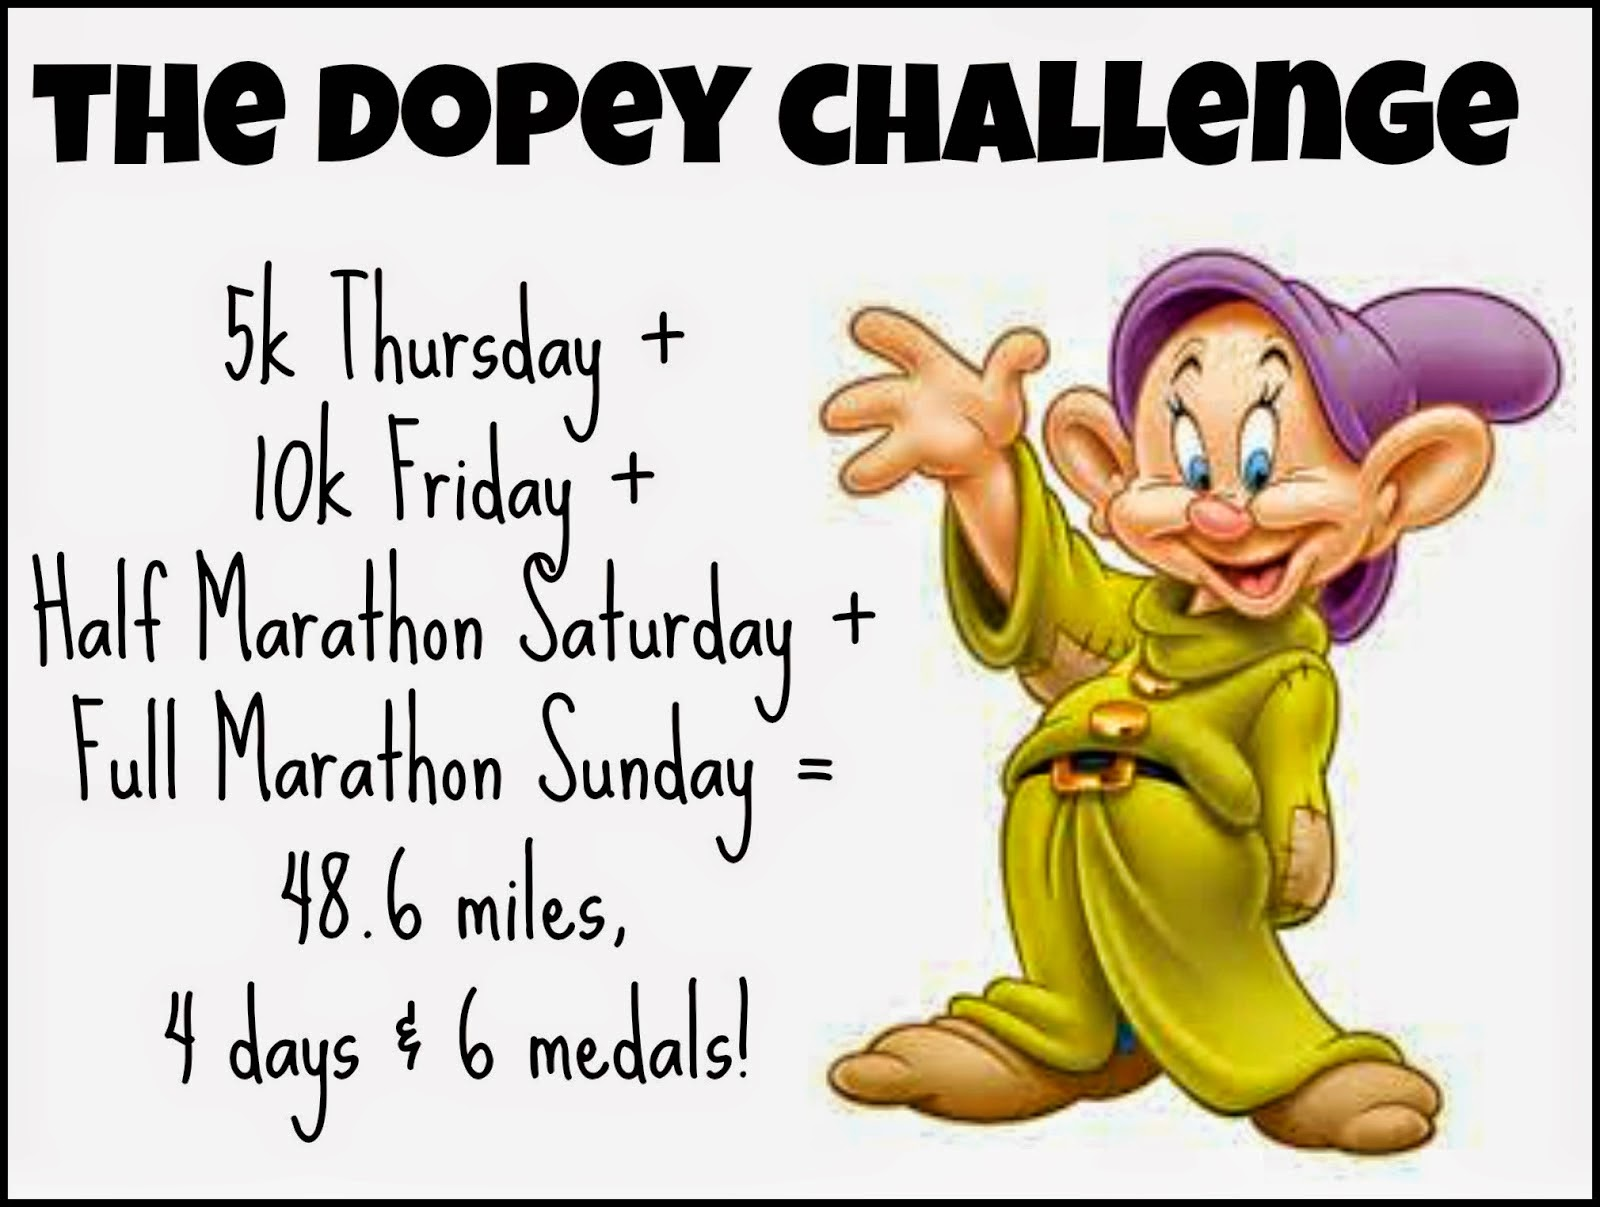 The Dopey Challenge